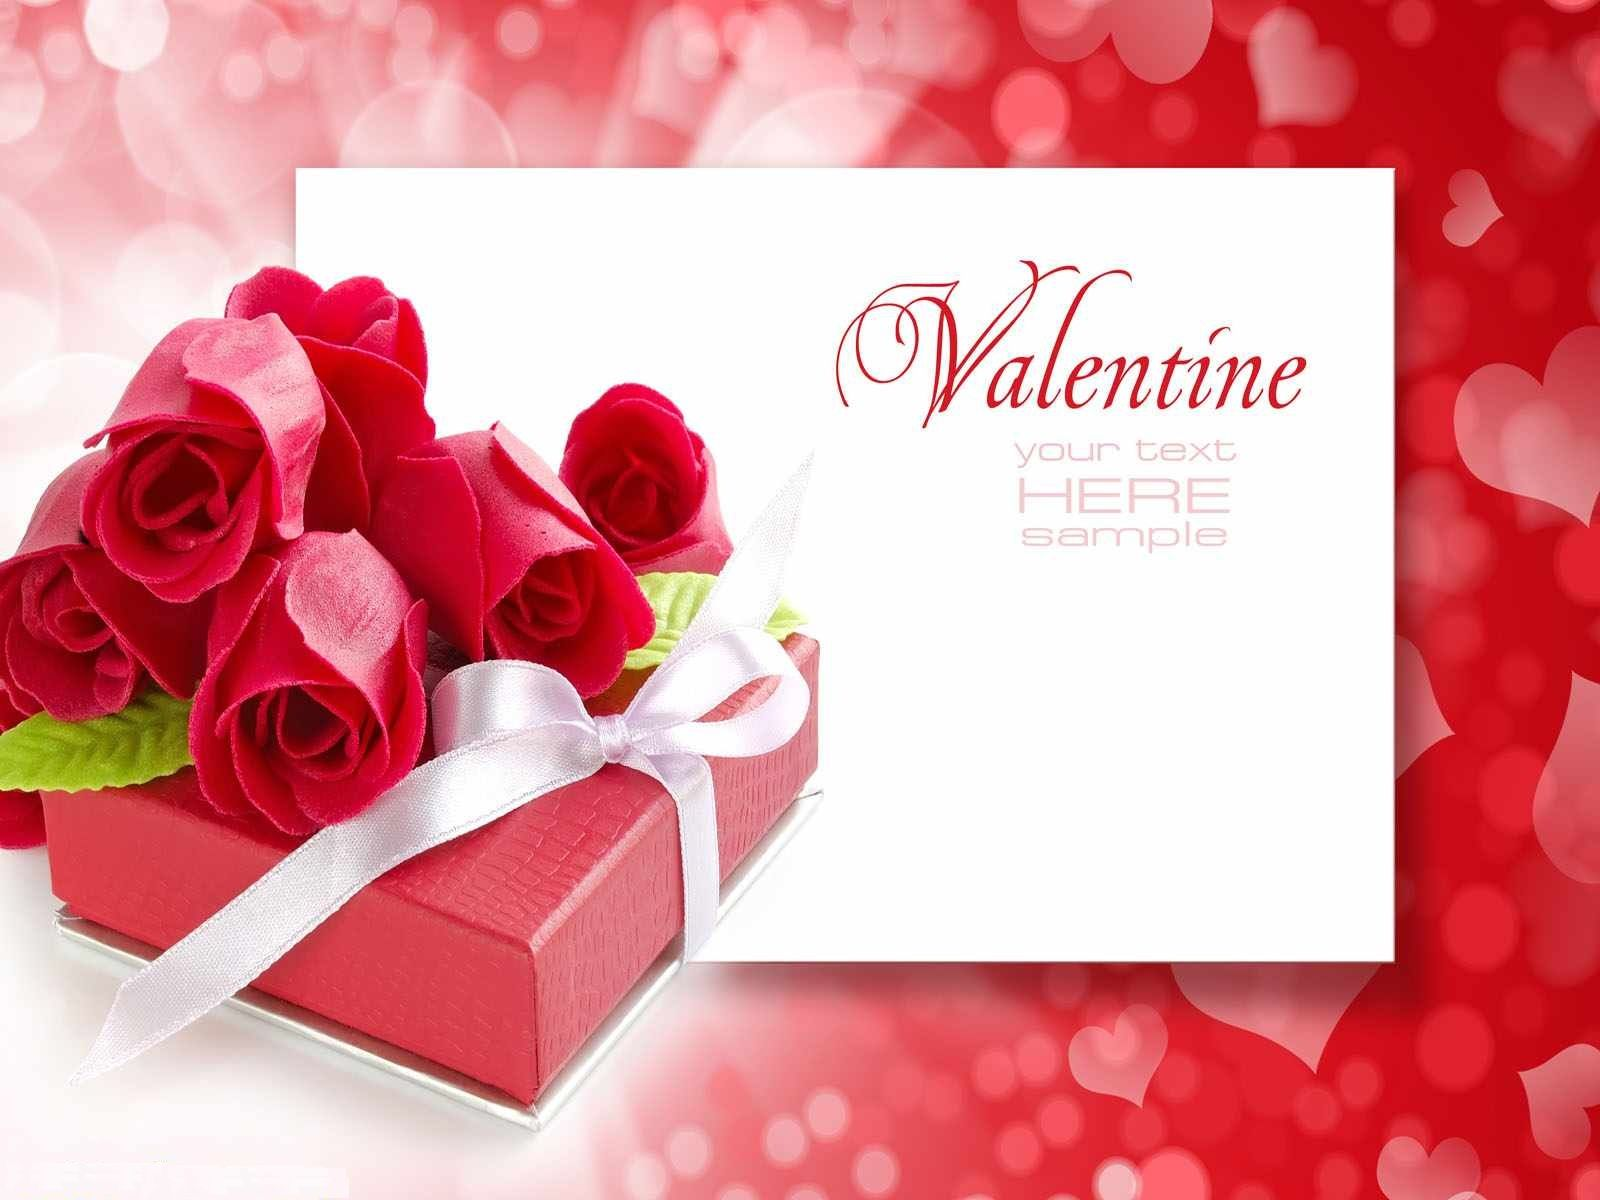 17 Best ideas about Valentine Day Image Wallpaper on Pinterest ...